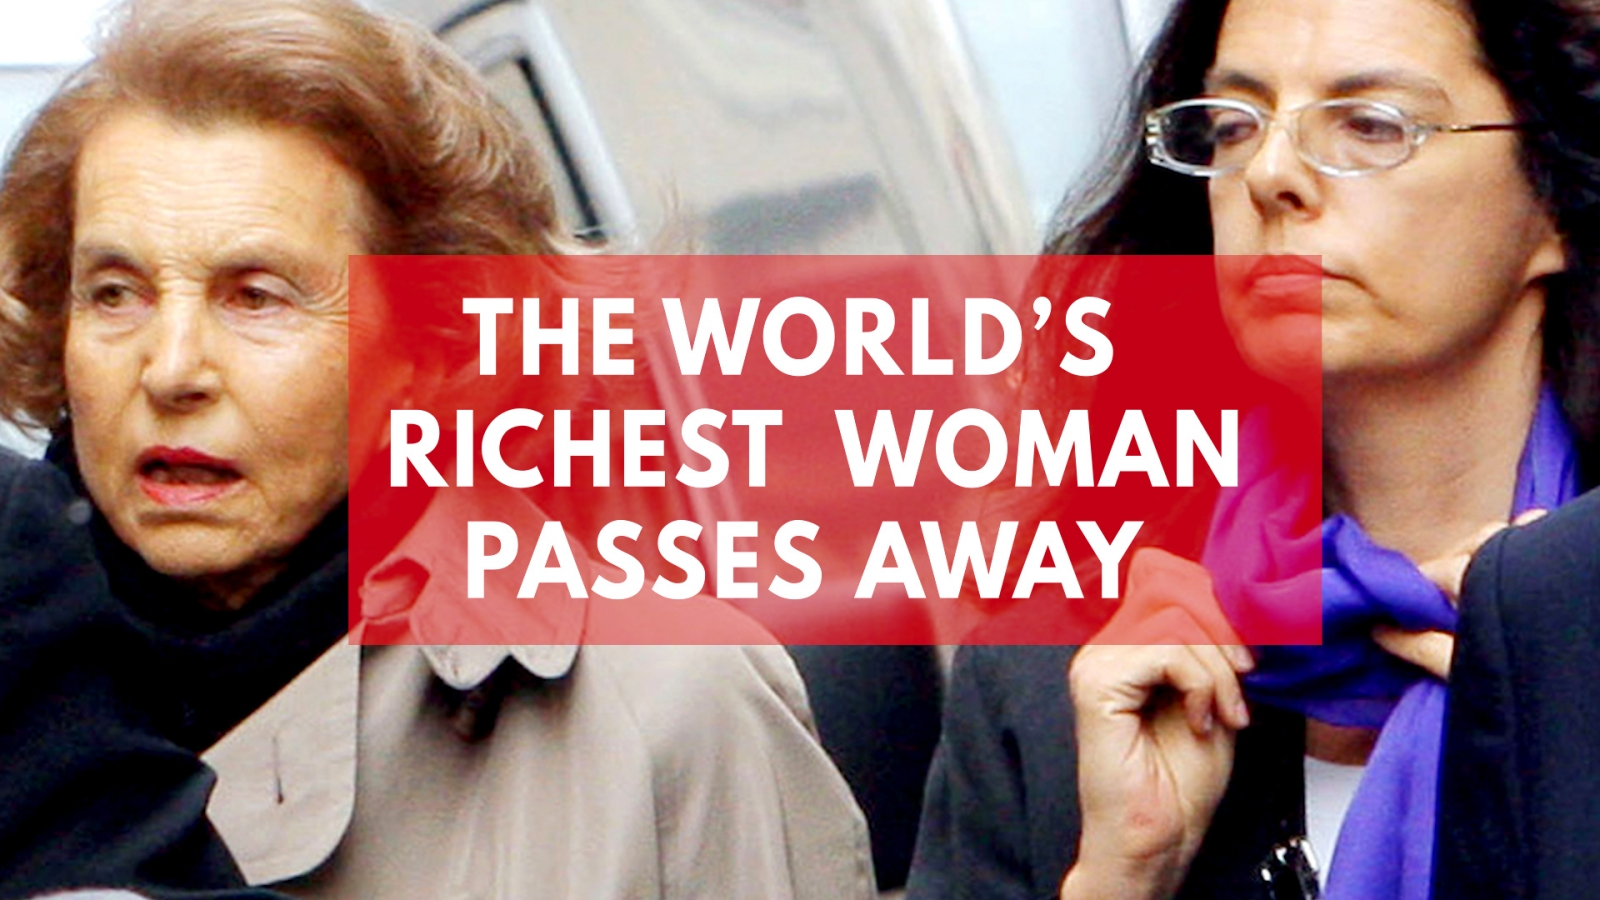 the-worlds-richest-woman-passes-away